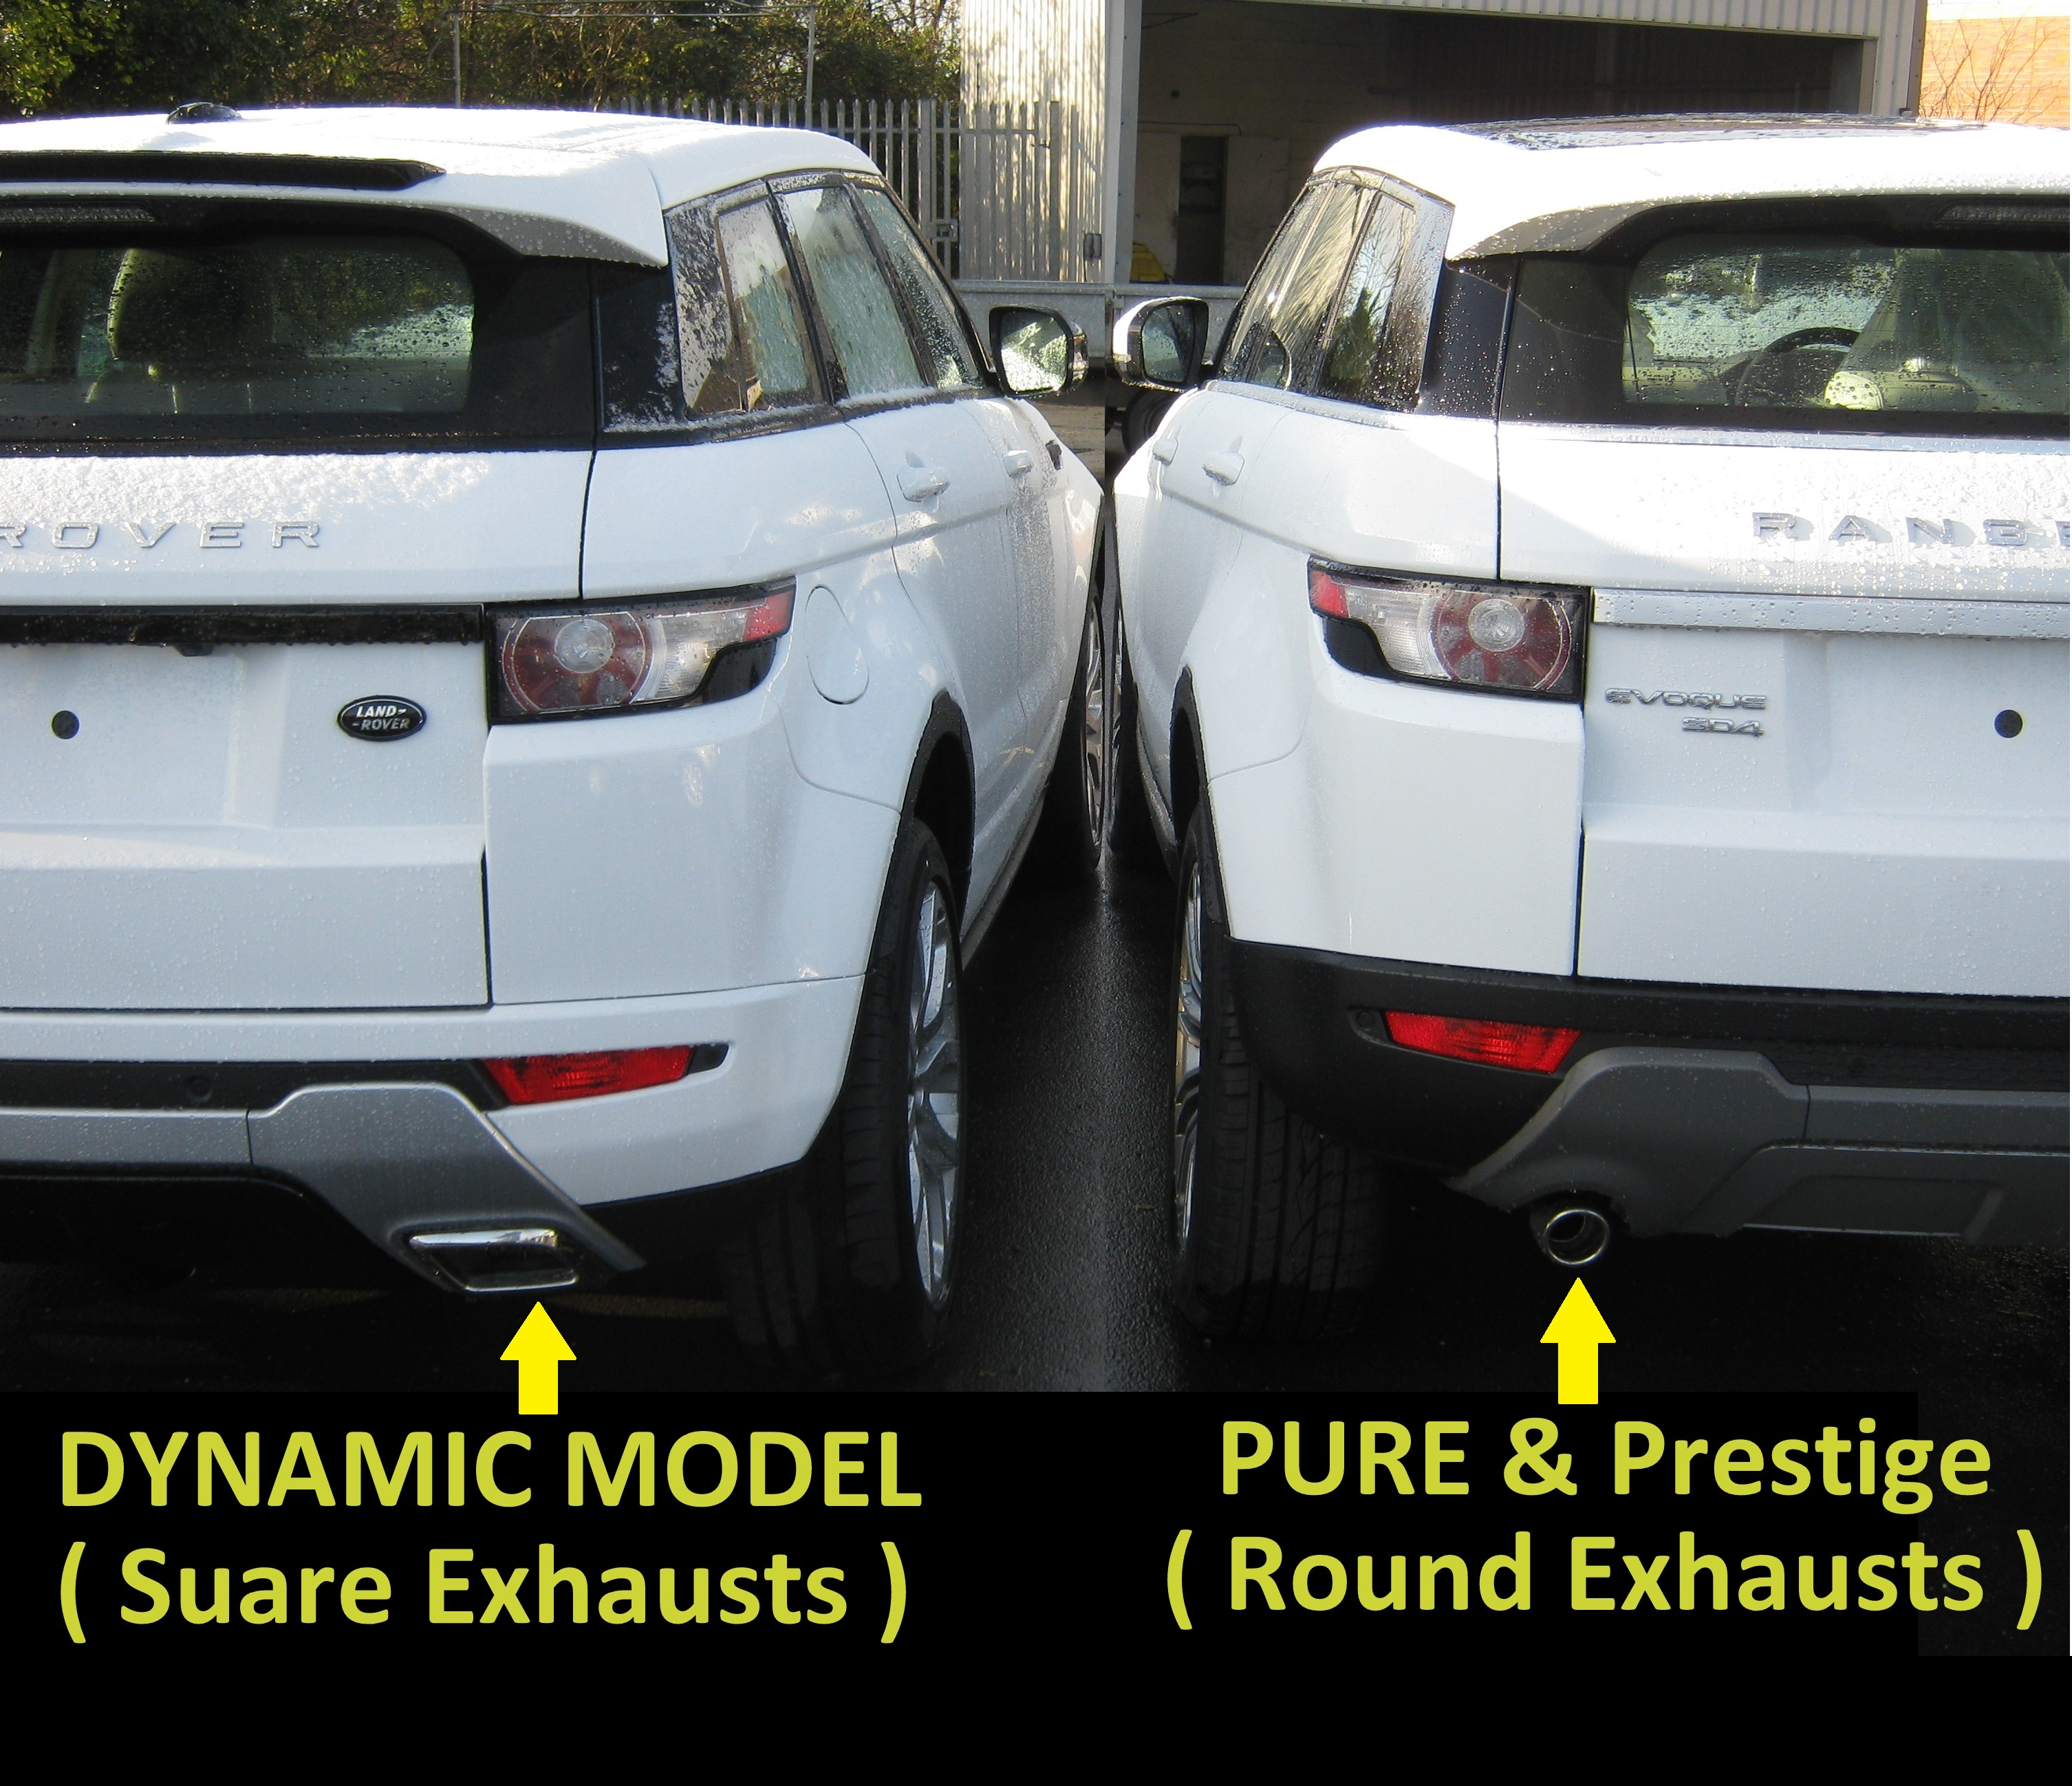 Range Rover Evoque Rear Mud Flap Guards Kit For Pure